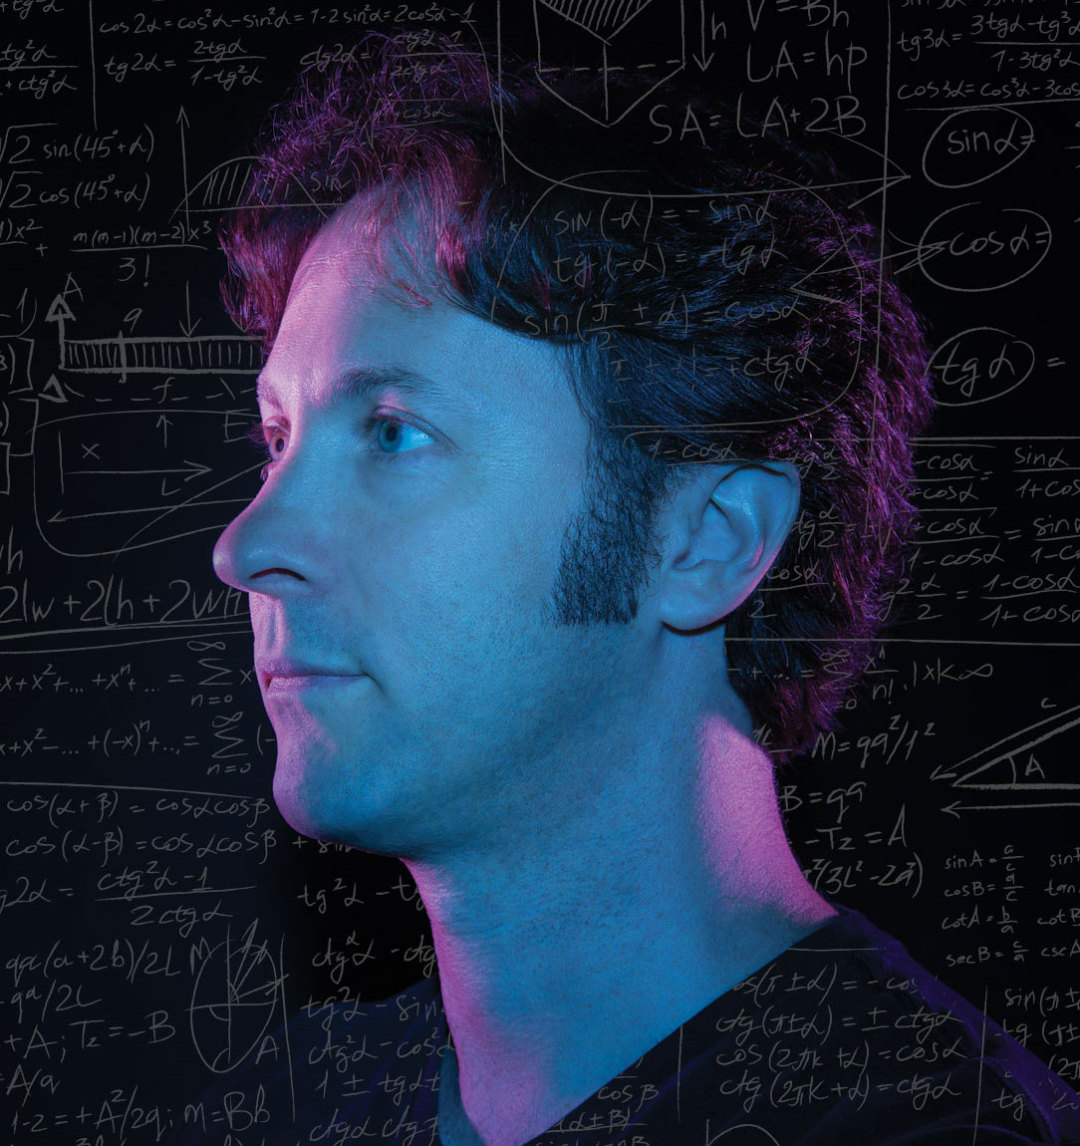 1015 bayougraphy david eagleman neuroscientist portrait jxppra